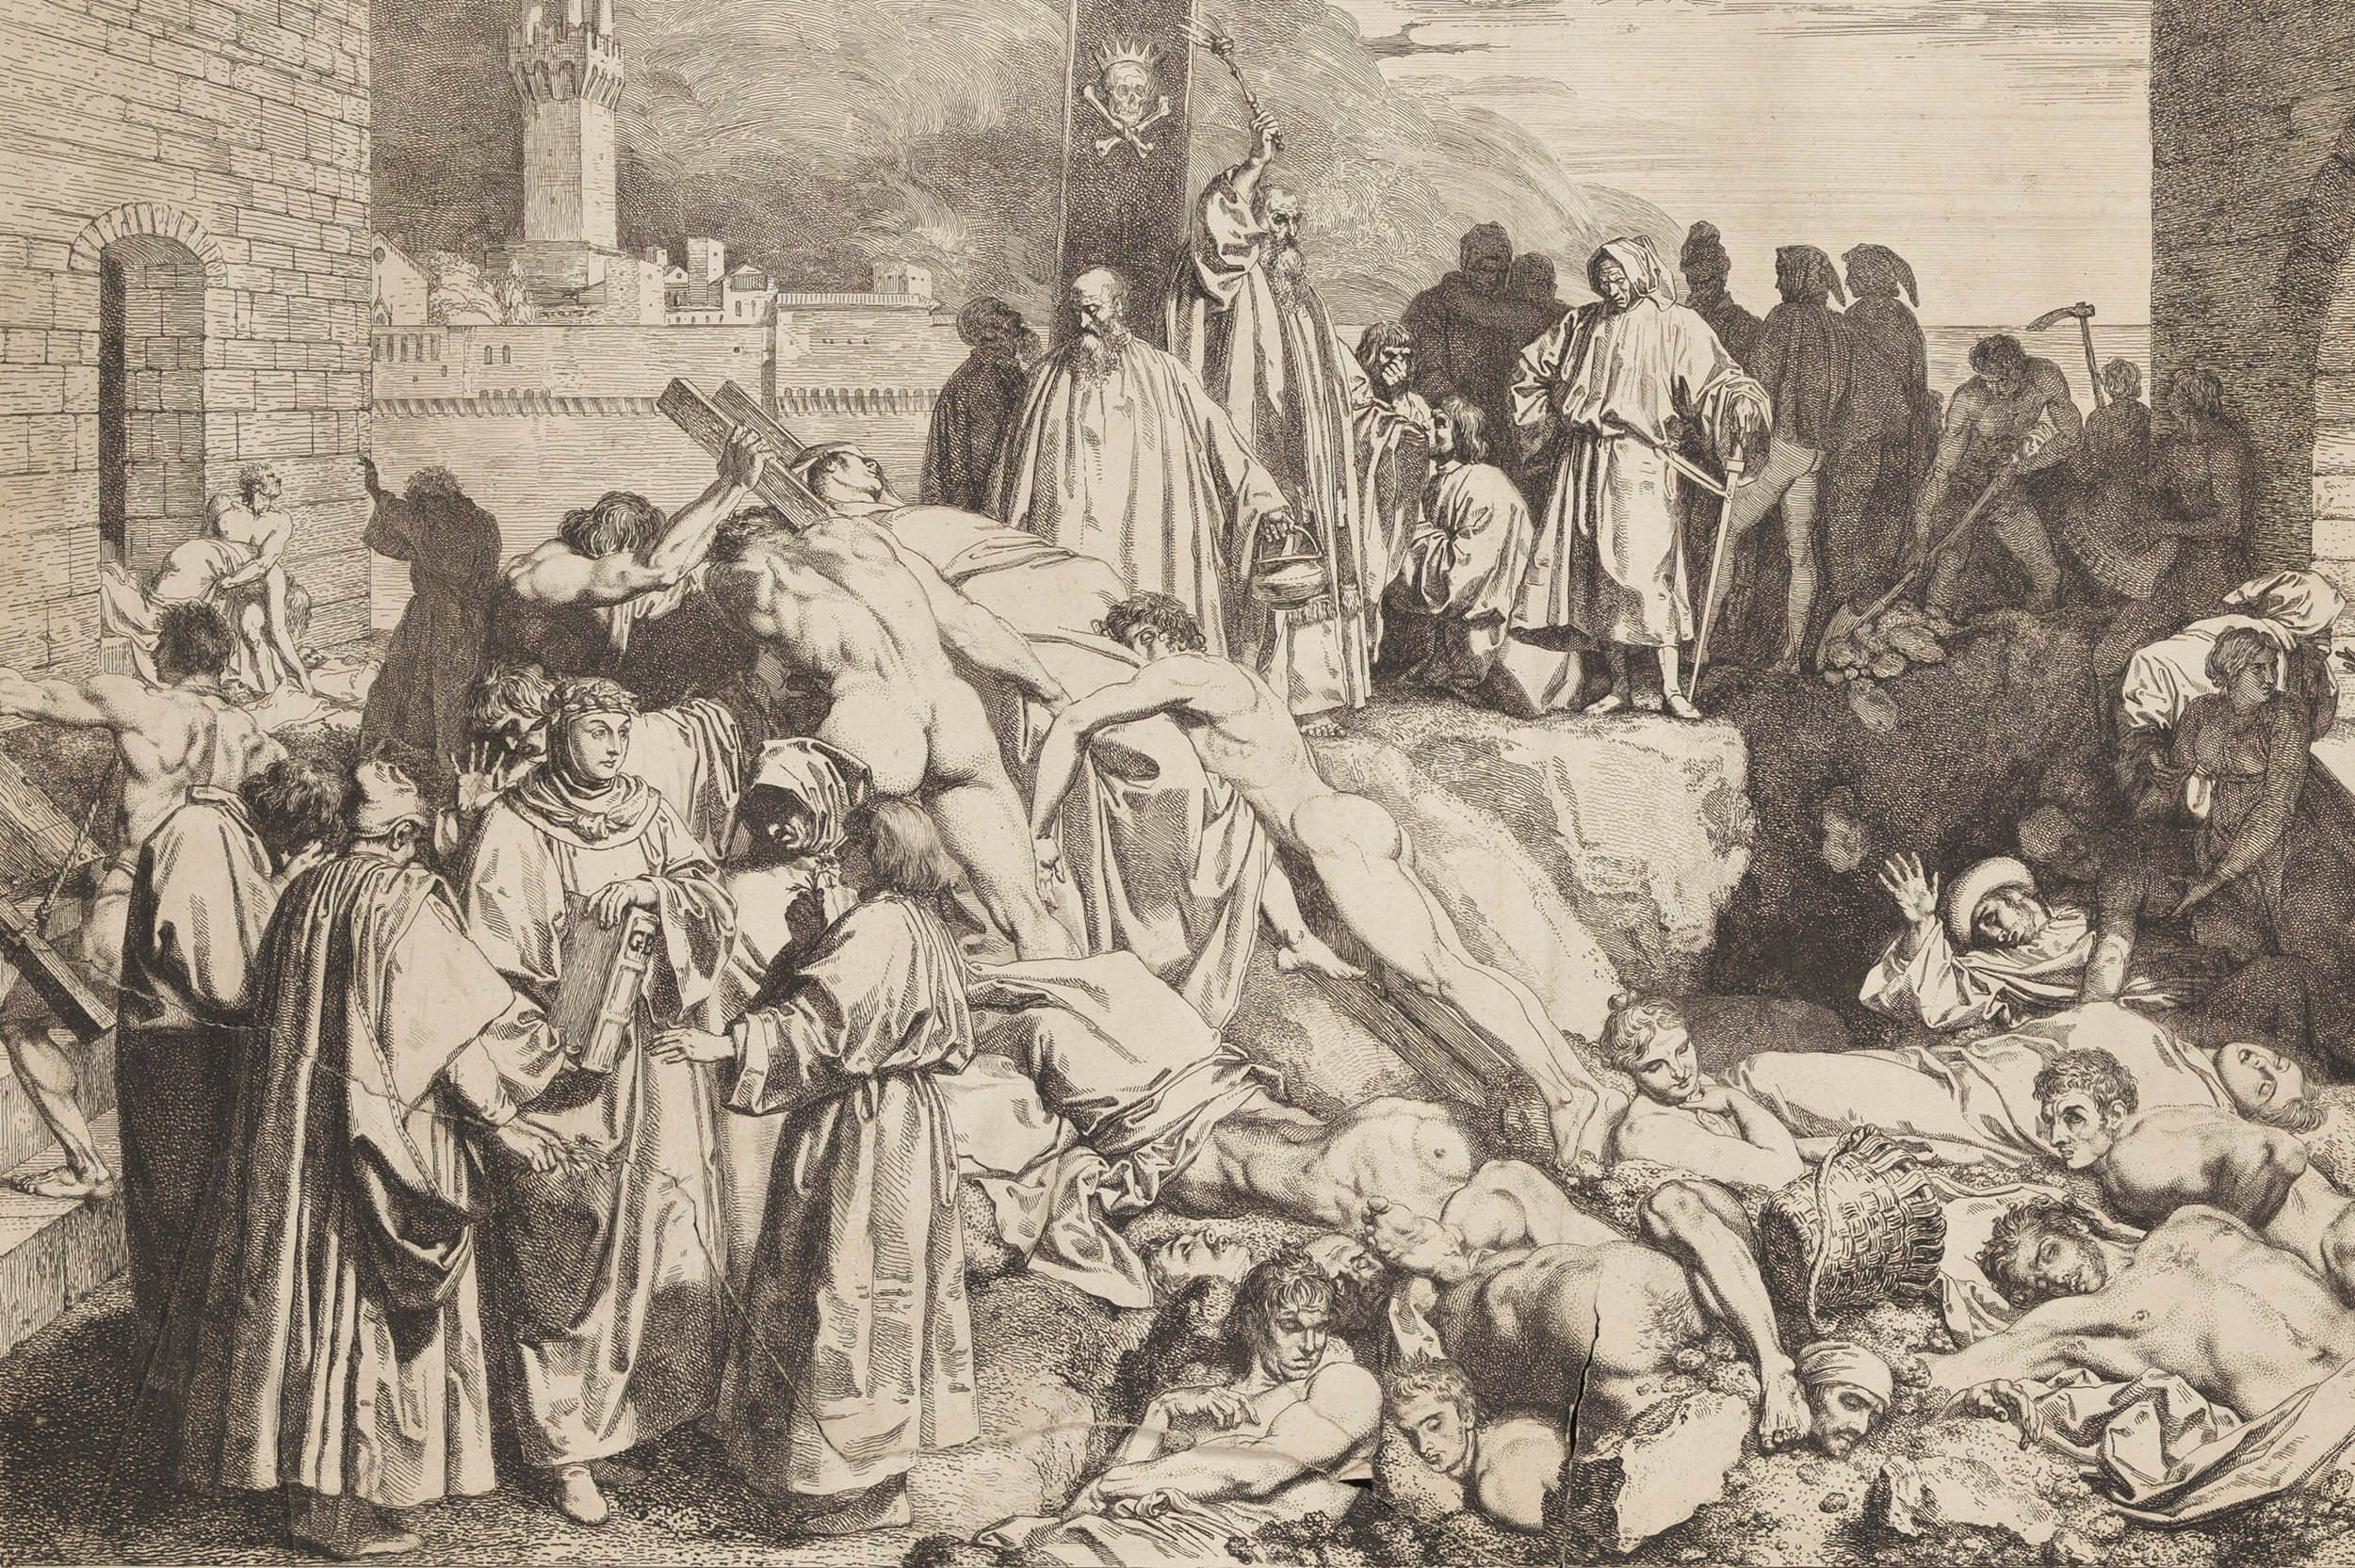 the plague that hit the medieval holocaust T he disastrous mortal disease known as the black death spread across europe in the years 1346-53 the frightening name, however, only came several centuries after its visitation (and was probably a mistranslation of the latin word 'atra' meaning both 'terrible' and 'black).